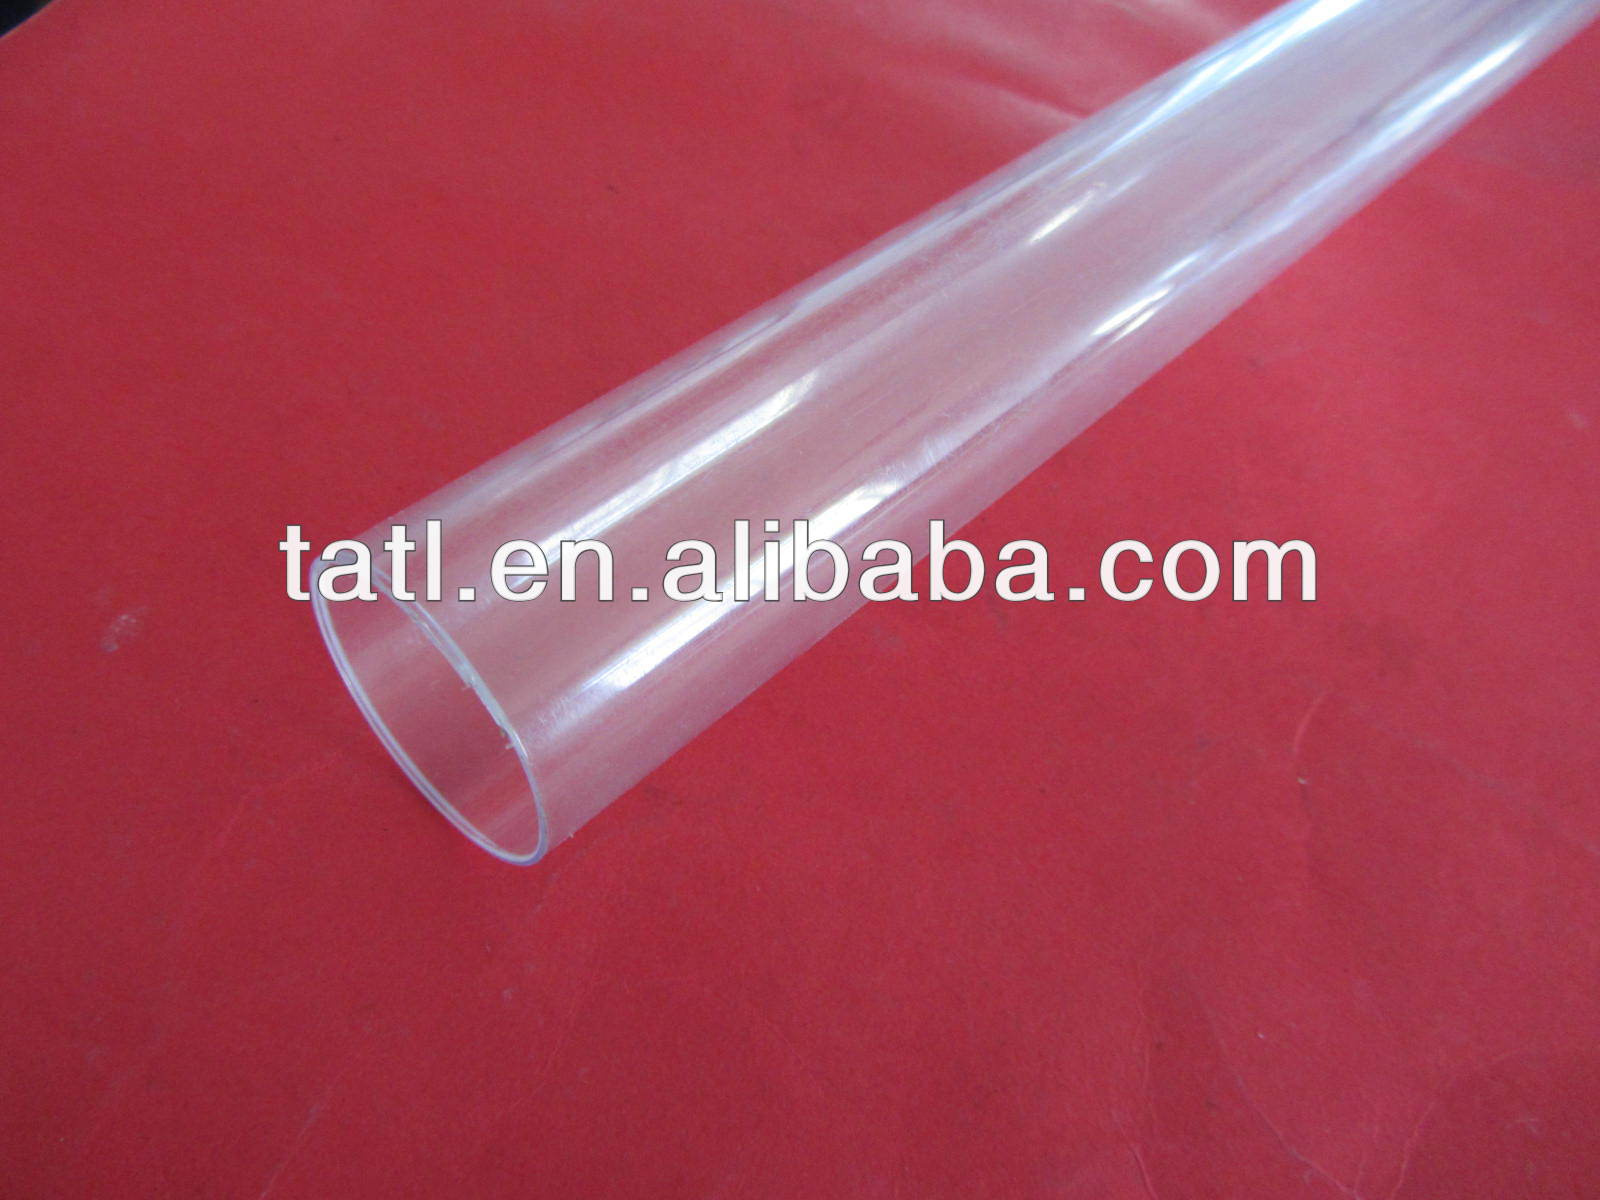 plastic tube packaging for hair extension